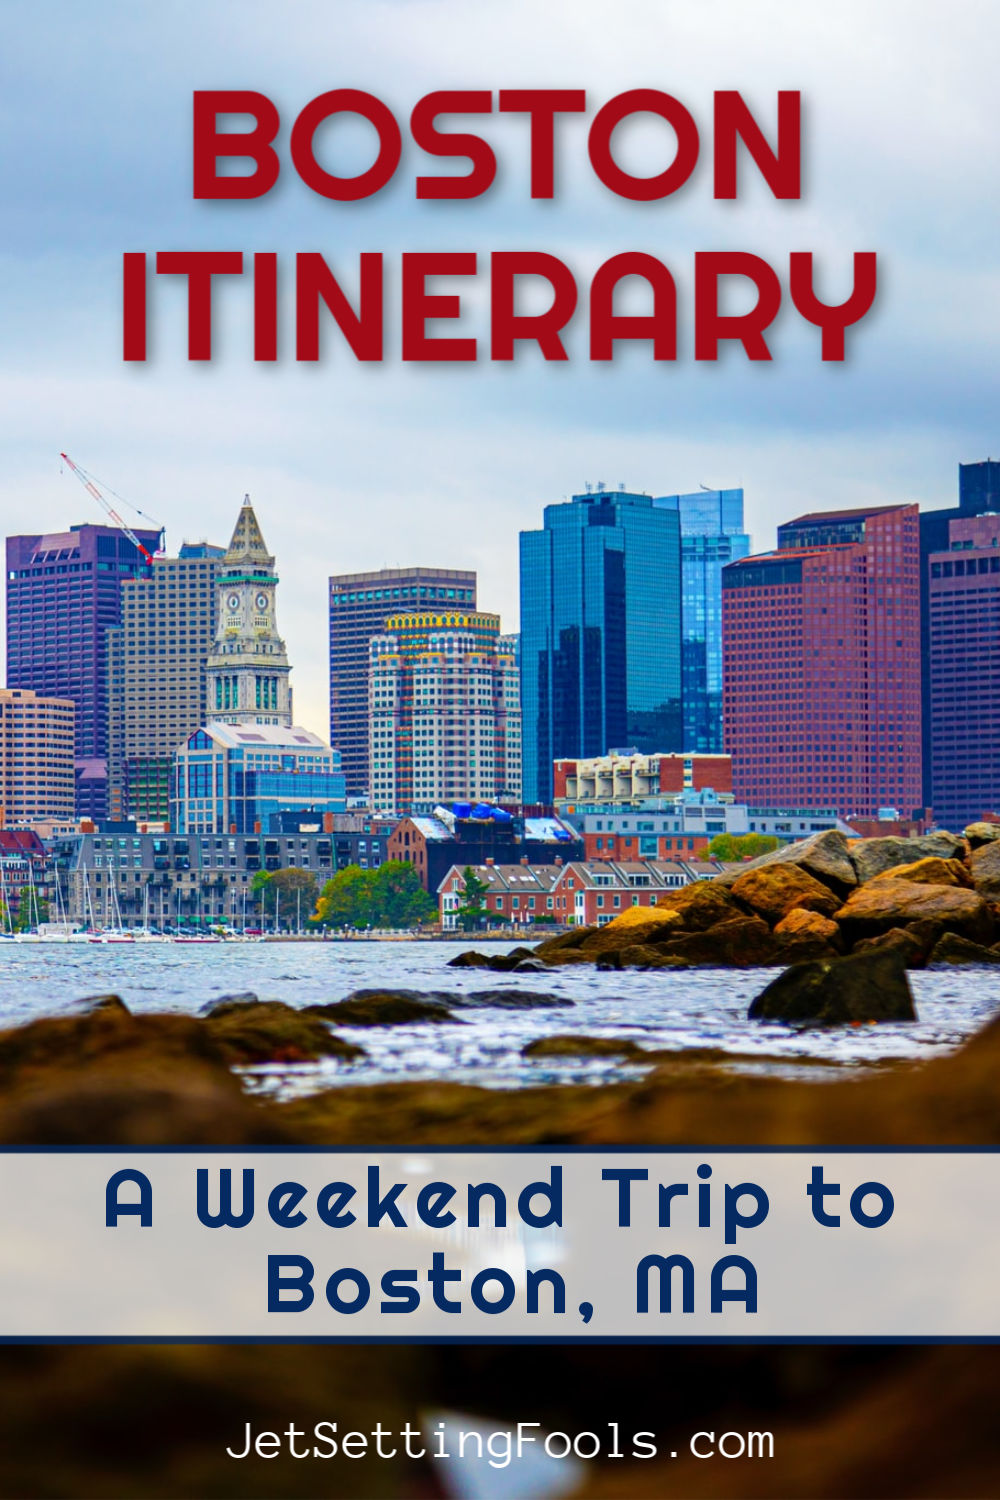 A Weekend Trip to Boston Itinerary by JetSettingFools.com